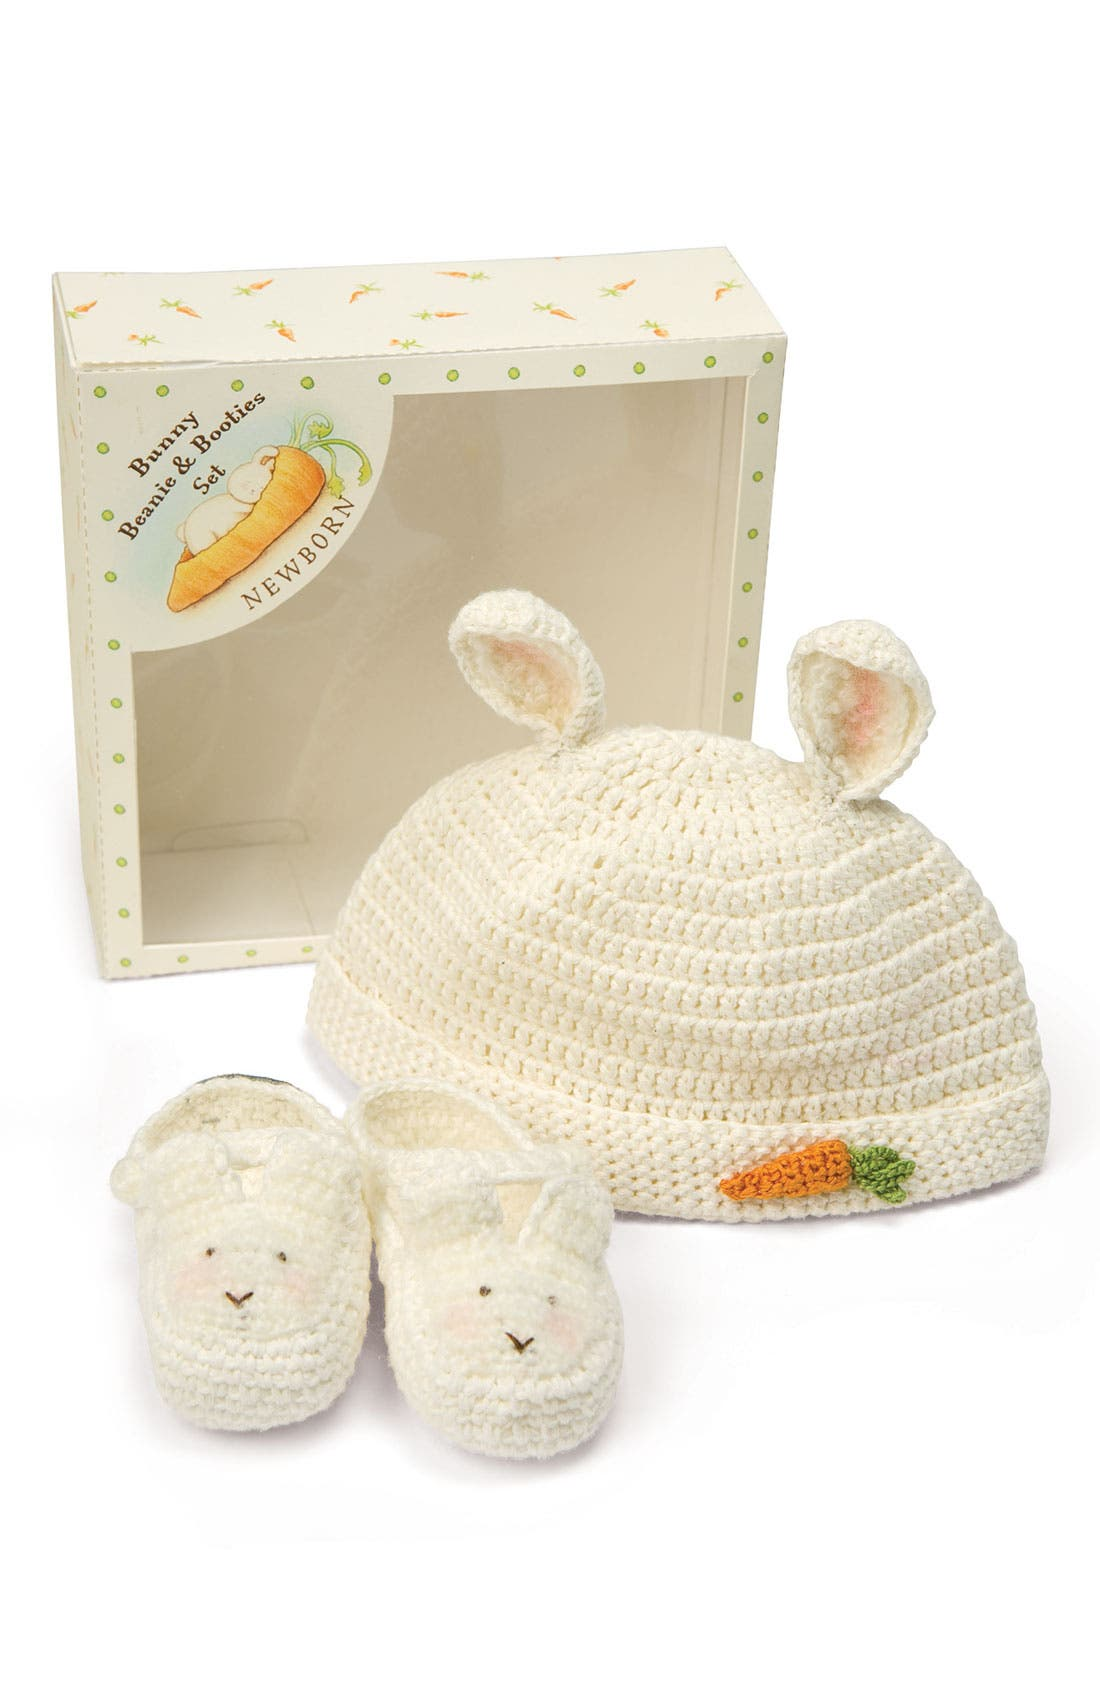 Main Image - Bunnies by the Bay 2-Piece Gift Set